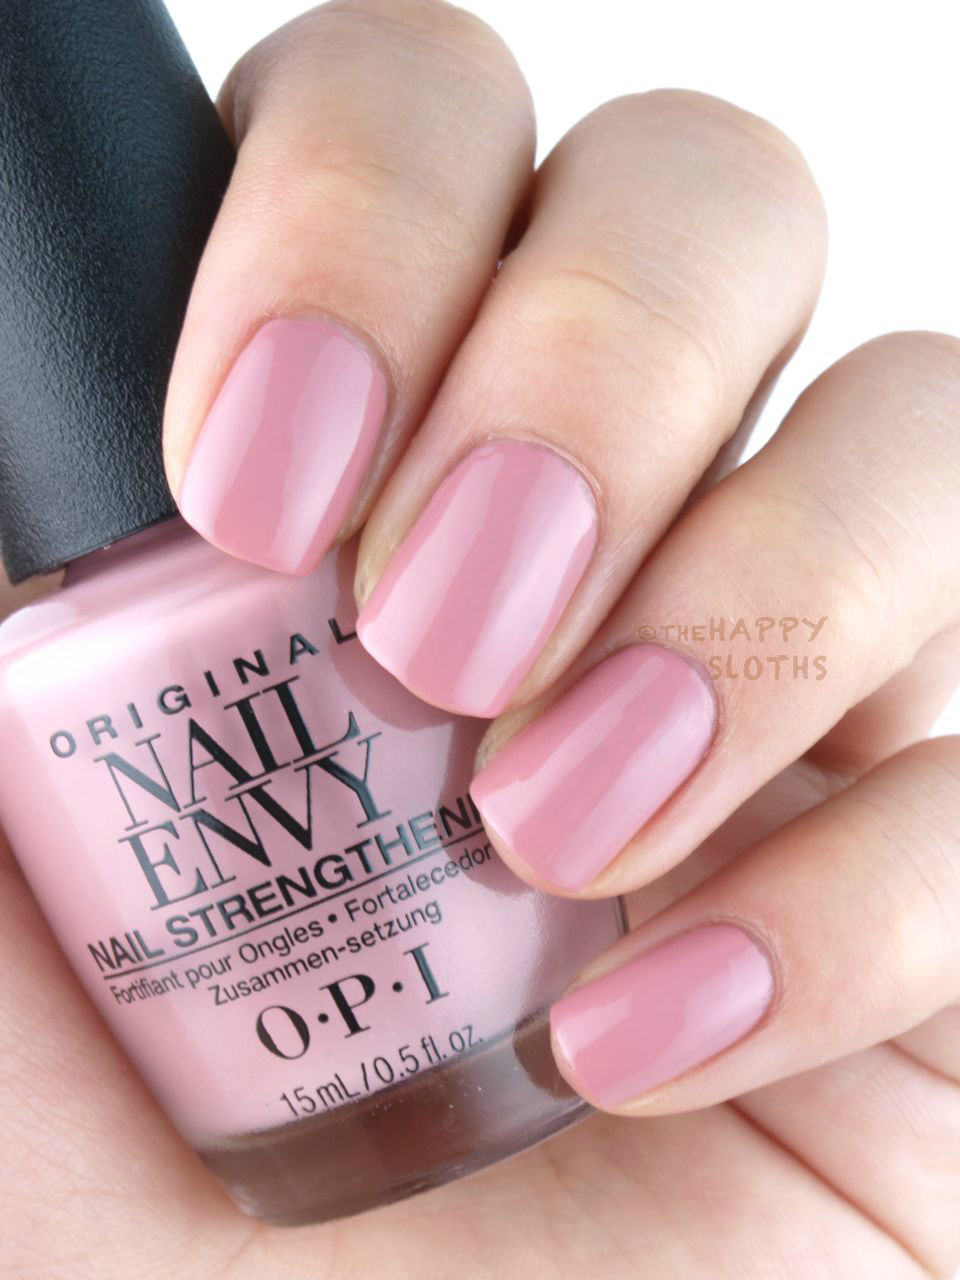 New Opi Nail Envy Nail Strengthener Strength Color Review And Swatches The Happy Sloths